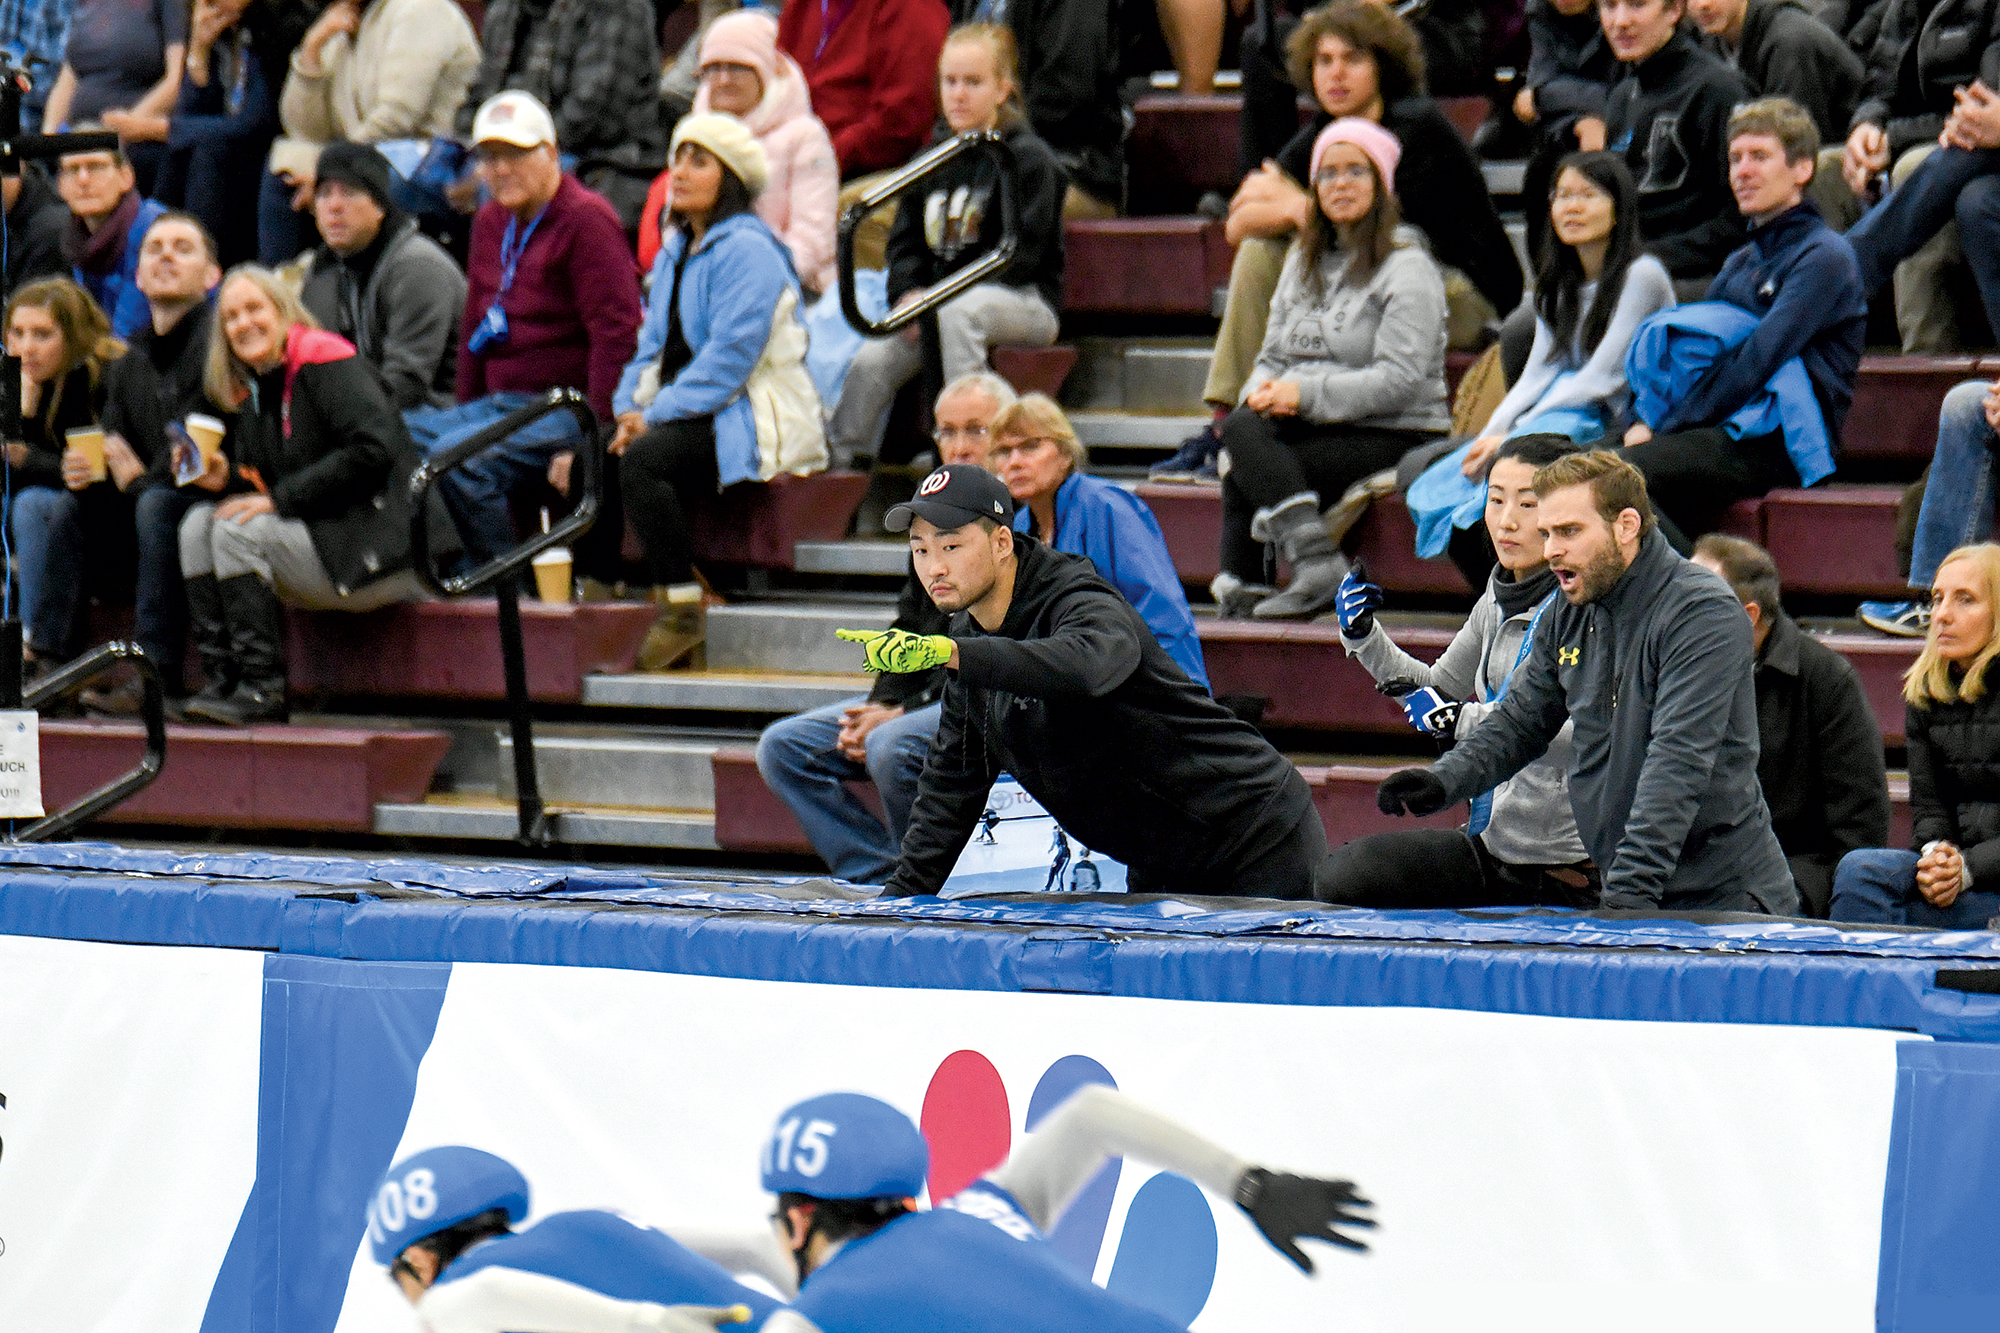 Cho (above center) returned to the Olympic Trials last year as coach of his own teenage prodigy. The young skater didn't make it—but Cho says his future will be bright. Photograph by John Kim.